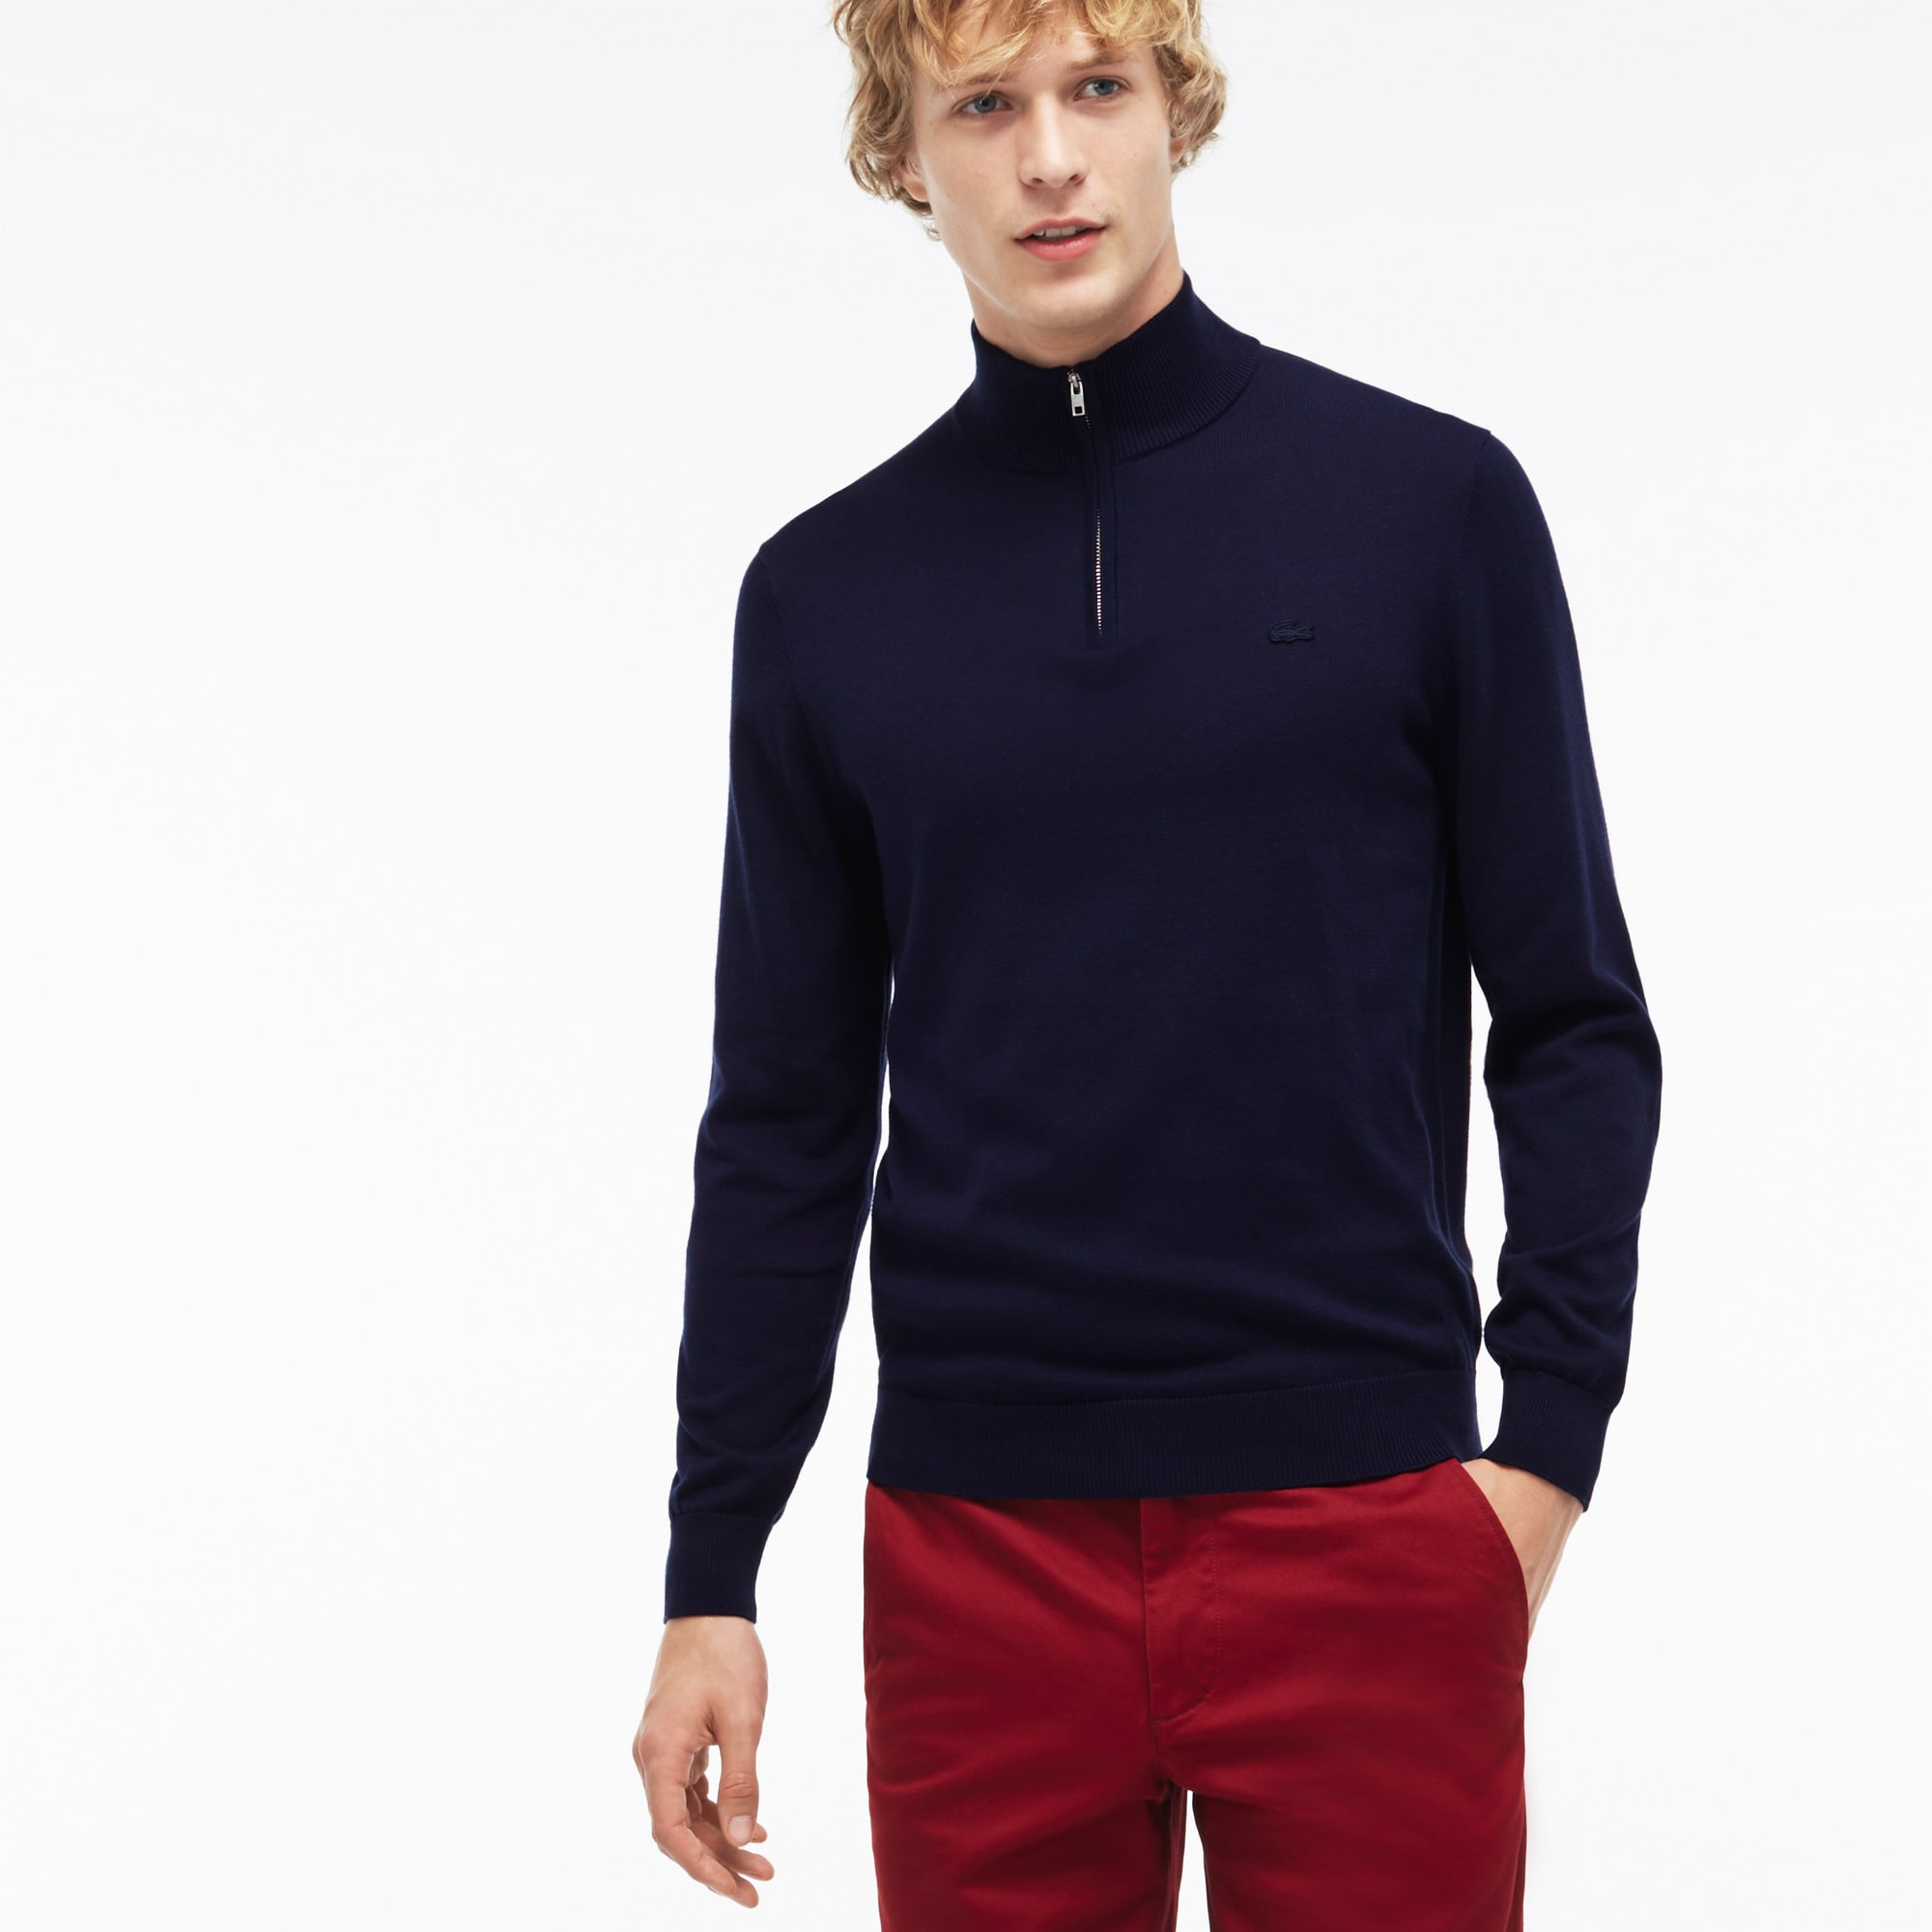 Men's Zip Jersey Sweater